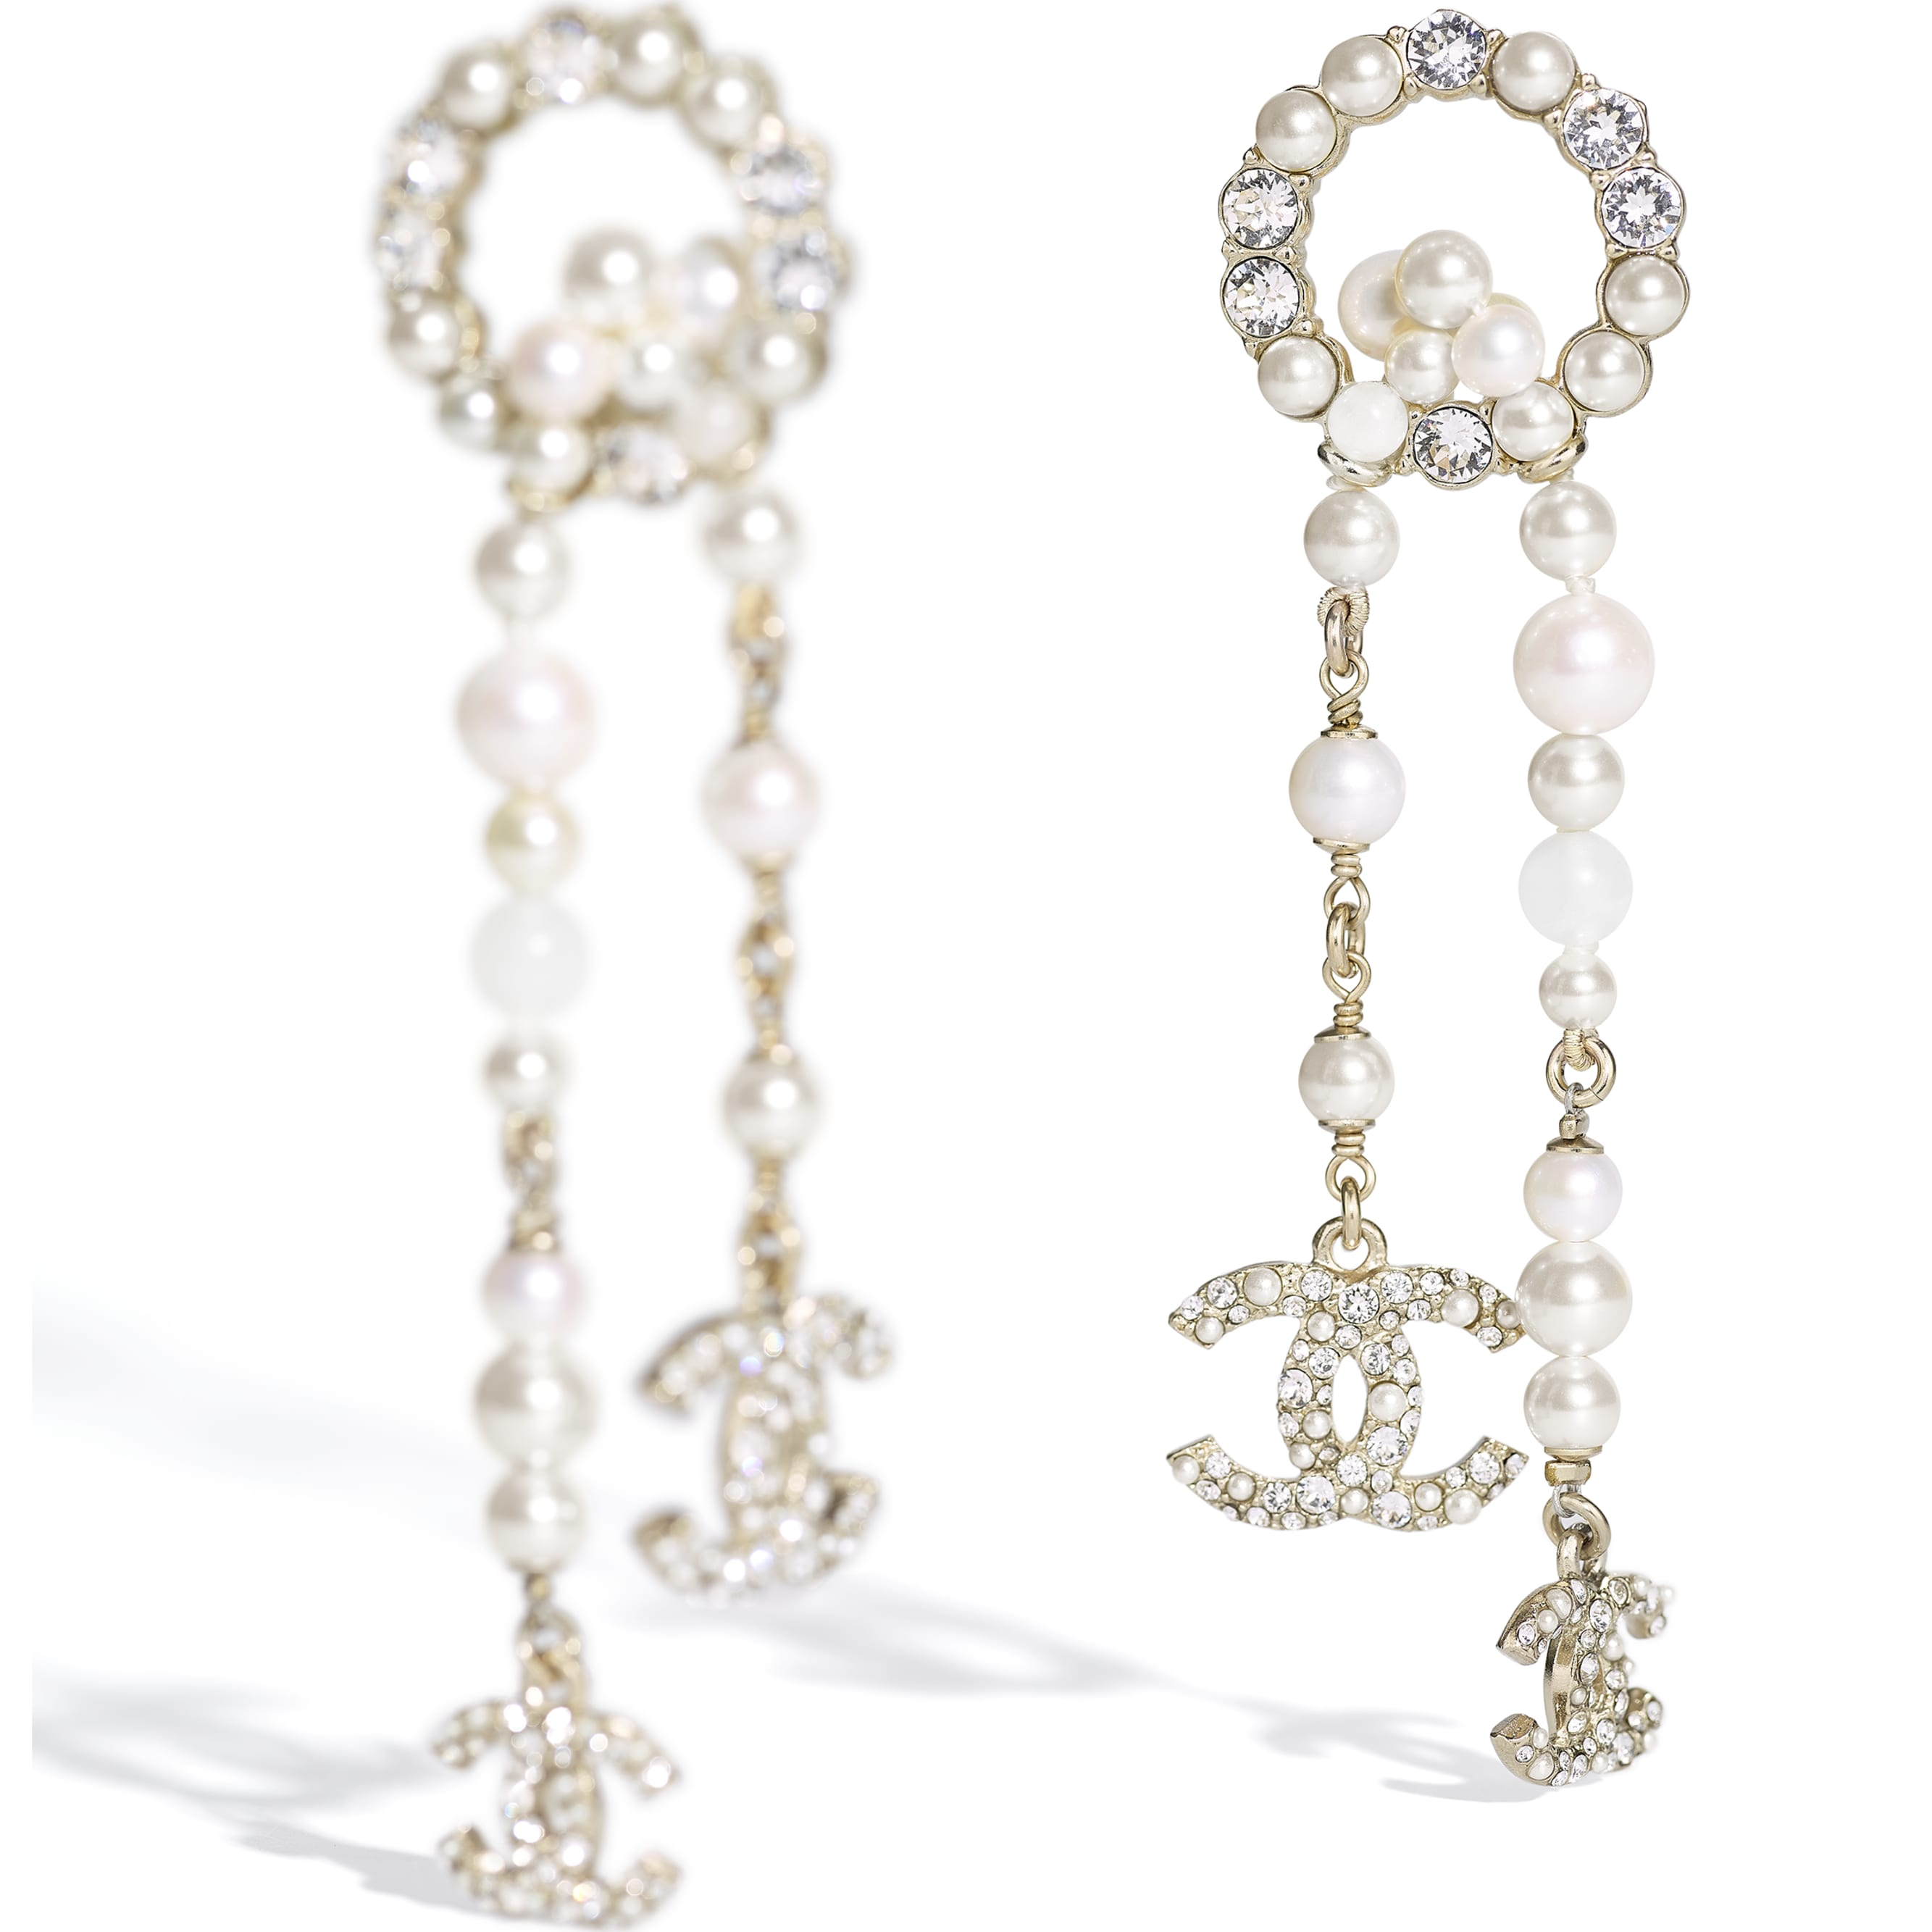 Earrings - Gold, Pearly White & Crystal - Metal, Natural Stones, Cultured Freshwater Pearls, Glass Pearls & Diamanté  - CHANEL - Alternative view - see standard sized version